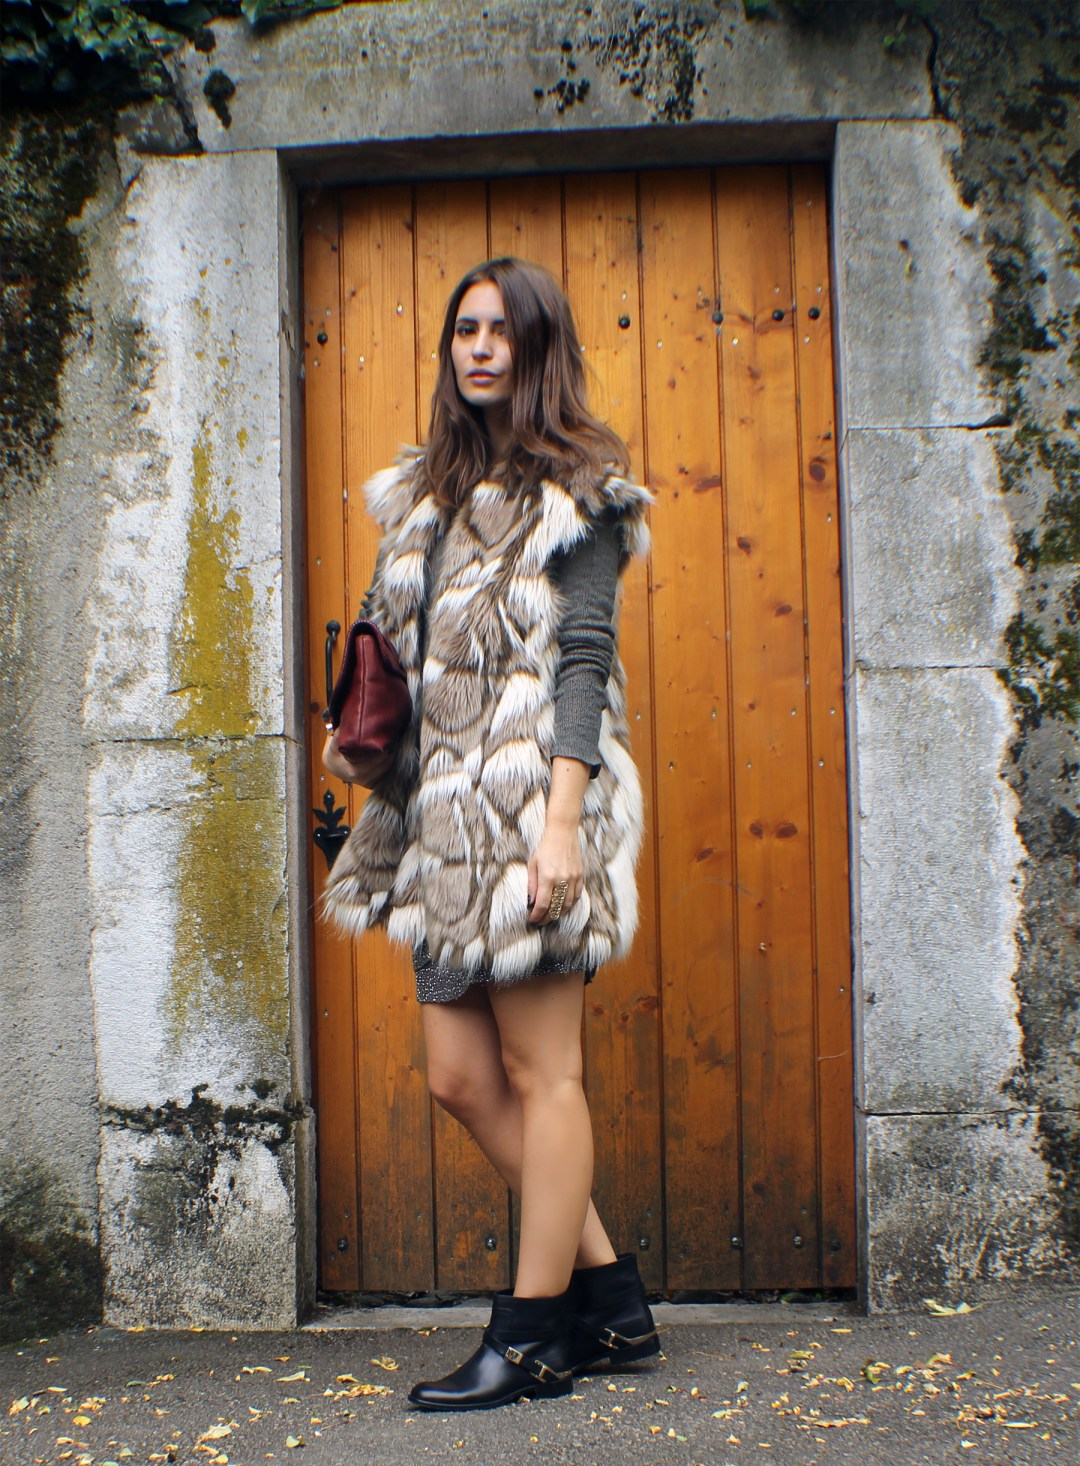 whattowhere-gypset-bohemianchic-winteroutfit3-hautehippie-gucci-fauxfur